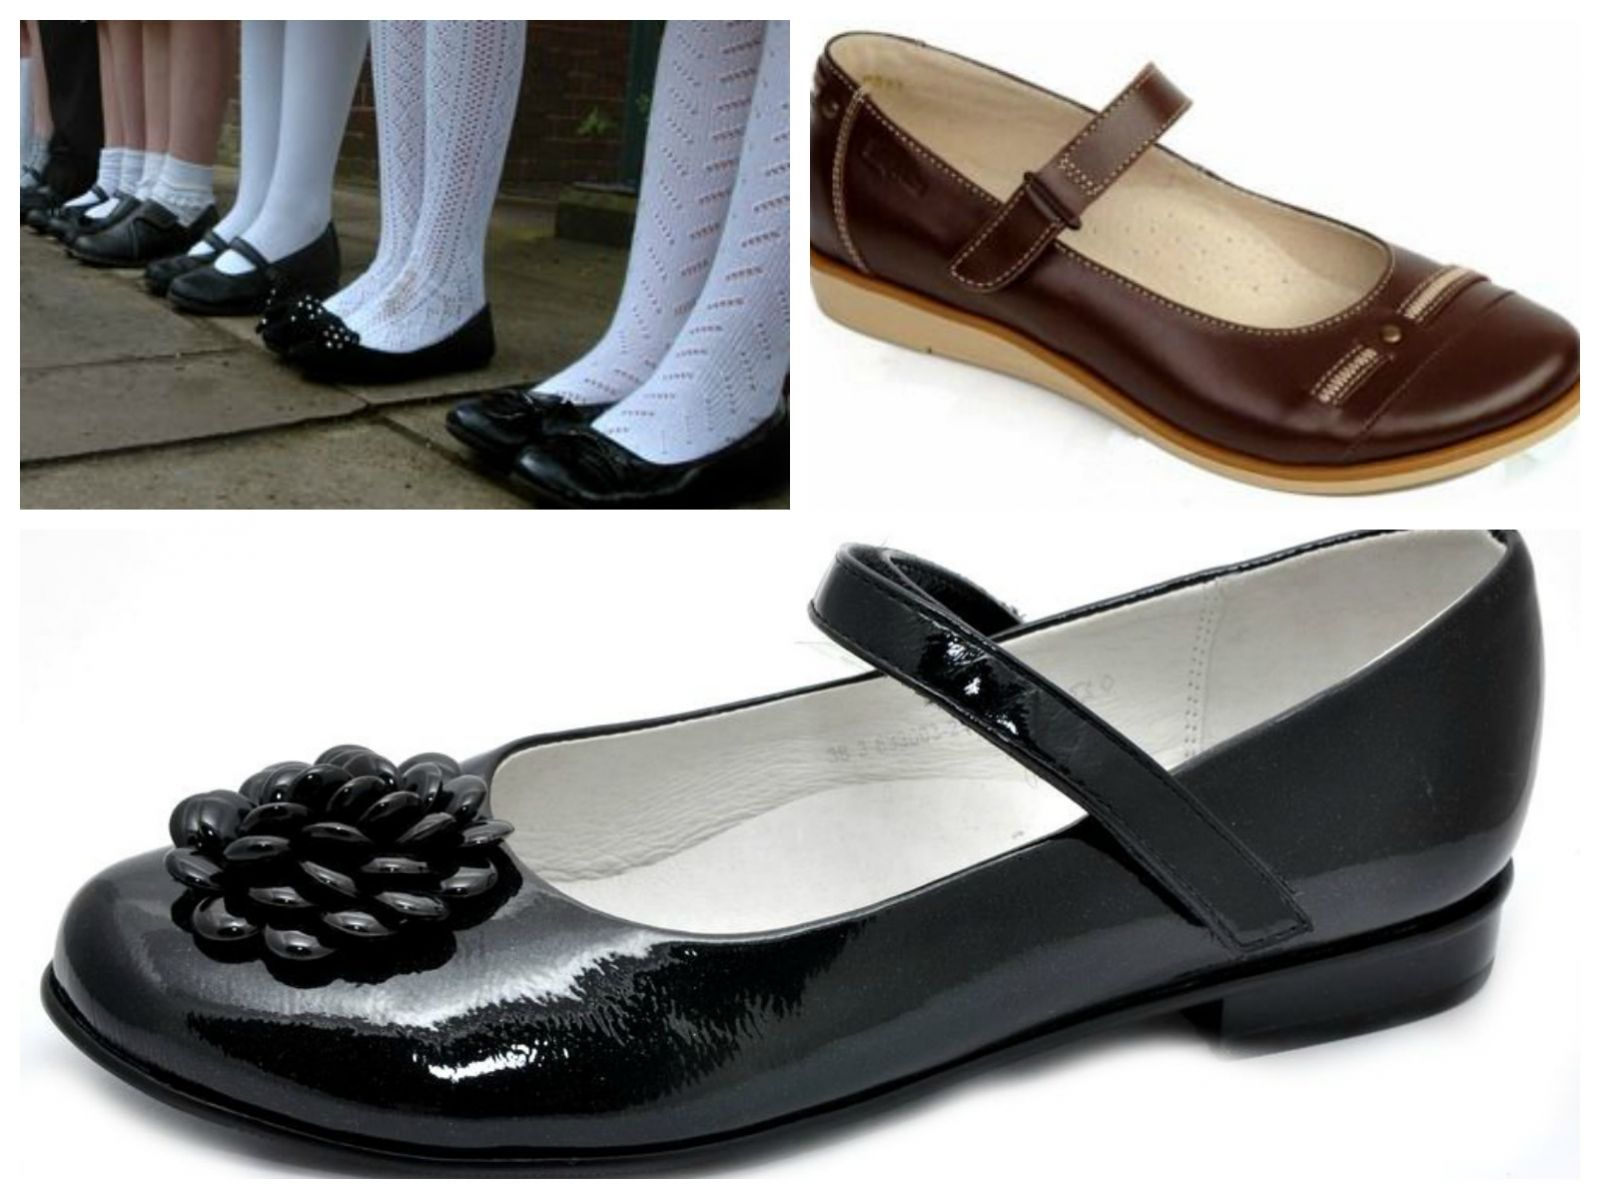 School shoes: what to buy and how to choose - image №1